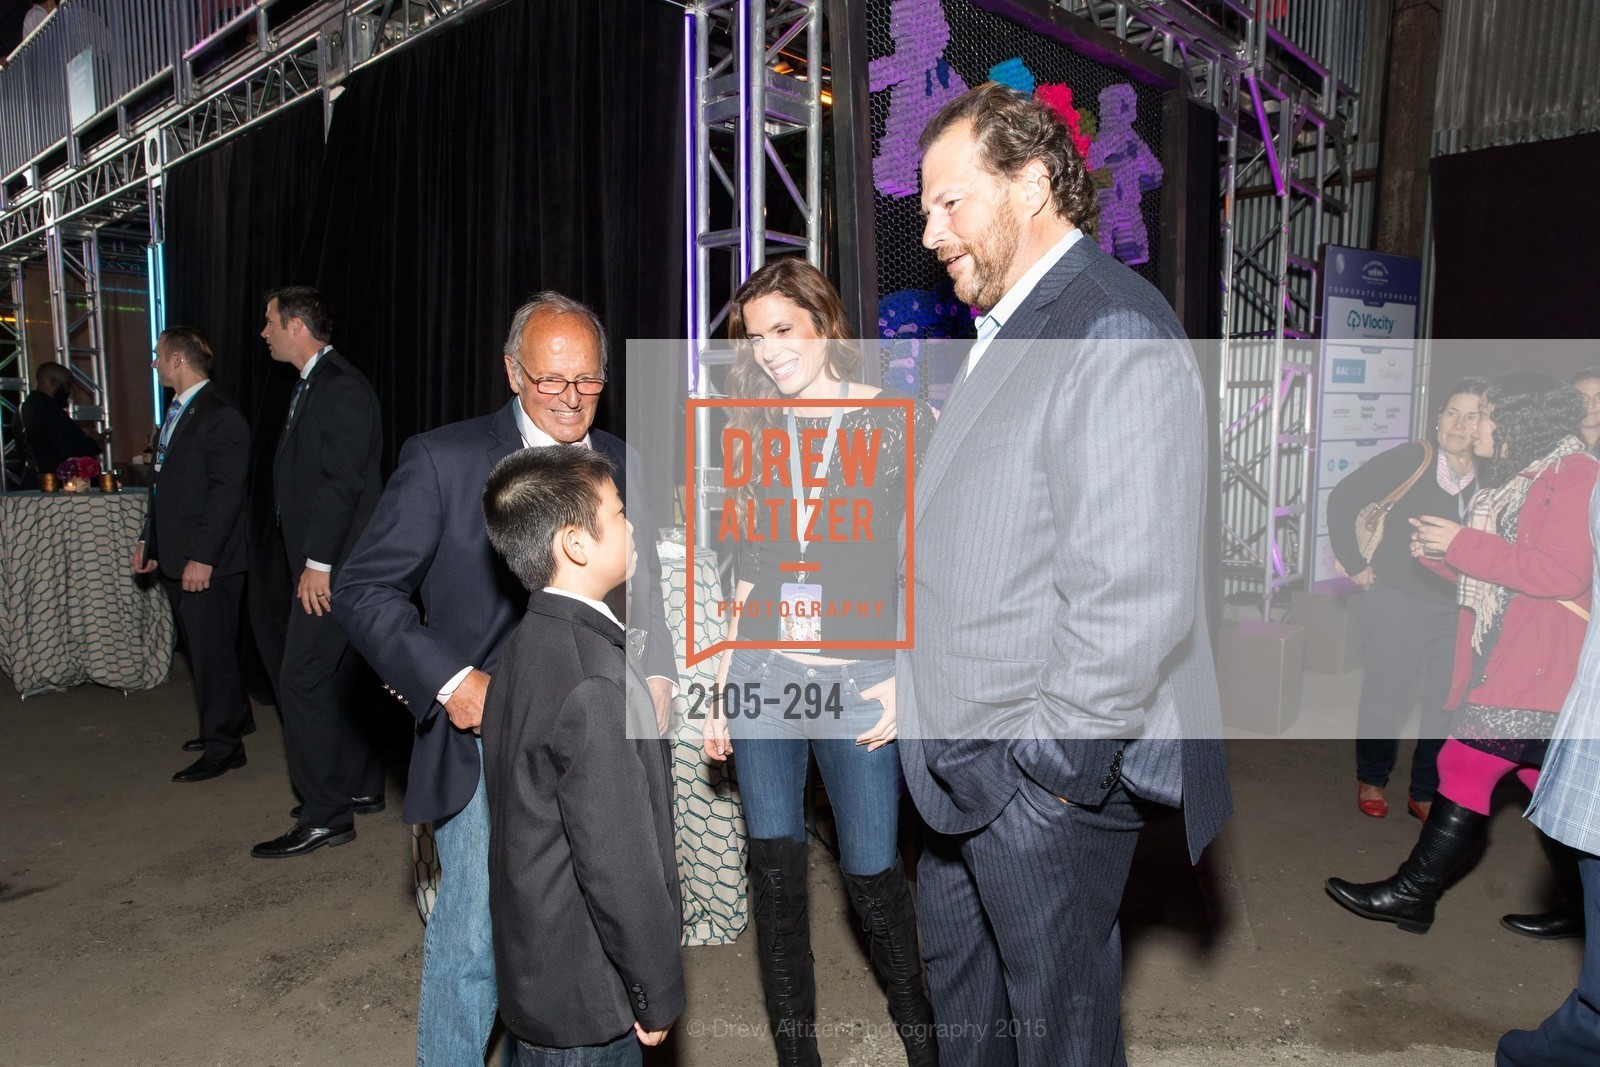 Zhenkang Zhao, Burt Lubin, Lynne Benioff, Marc Benioff, The Concert For UCSF Benioff Children's Hospital, Pier 70, September 17th, 2015,Drew Altizer, Drew Altizer Photography, full-service agency, private events, San Francisco photographer, photographer california